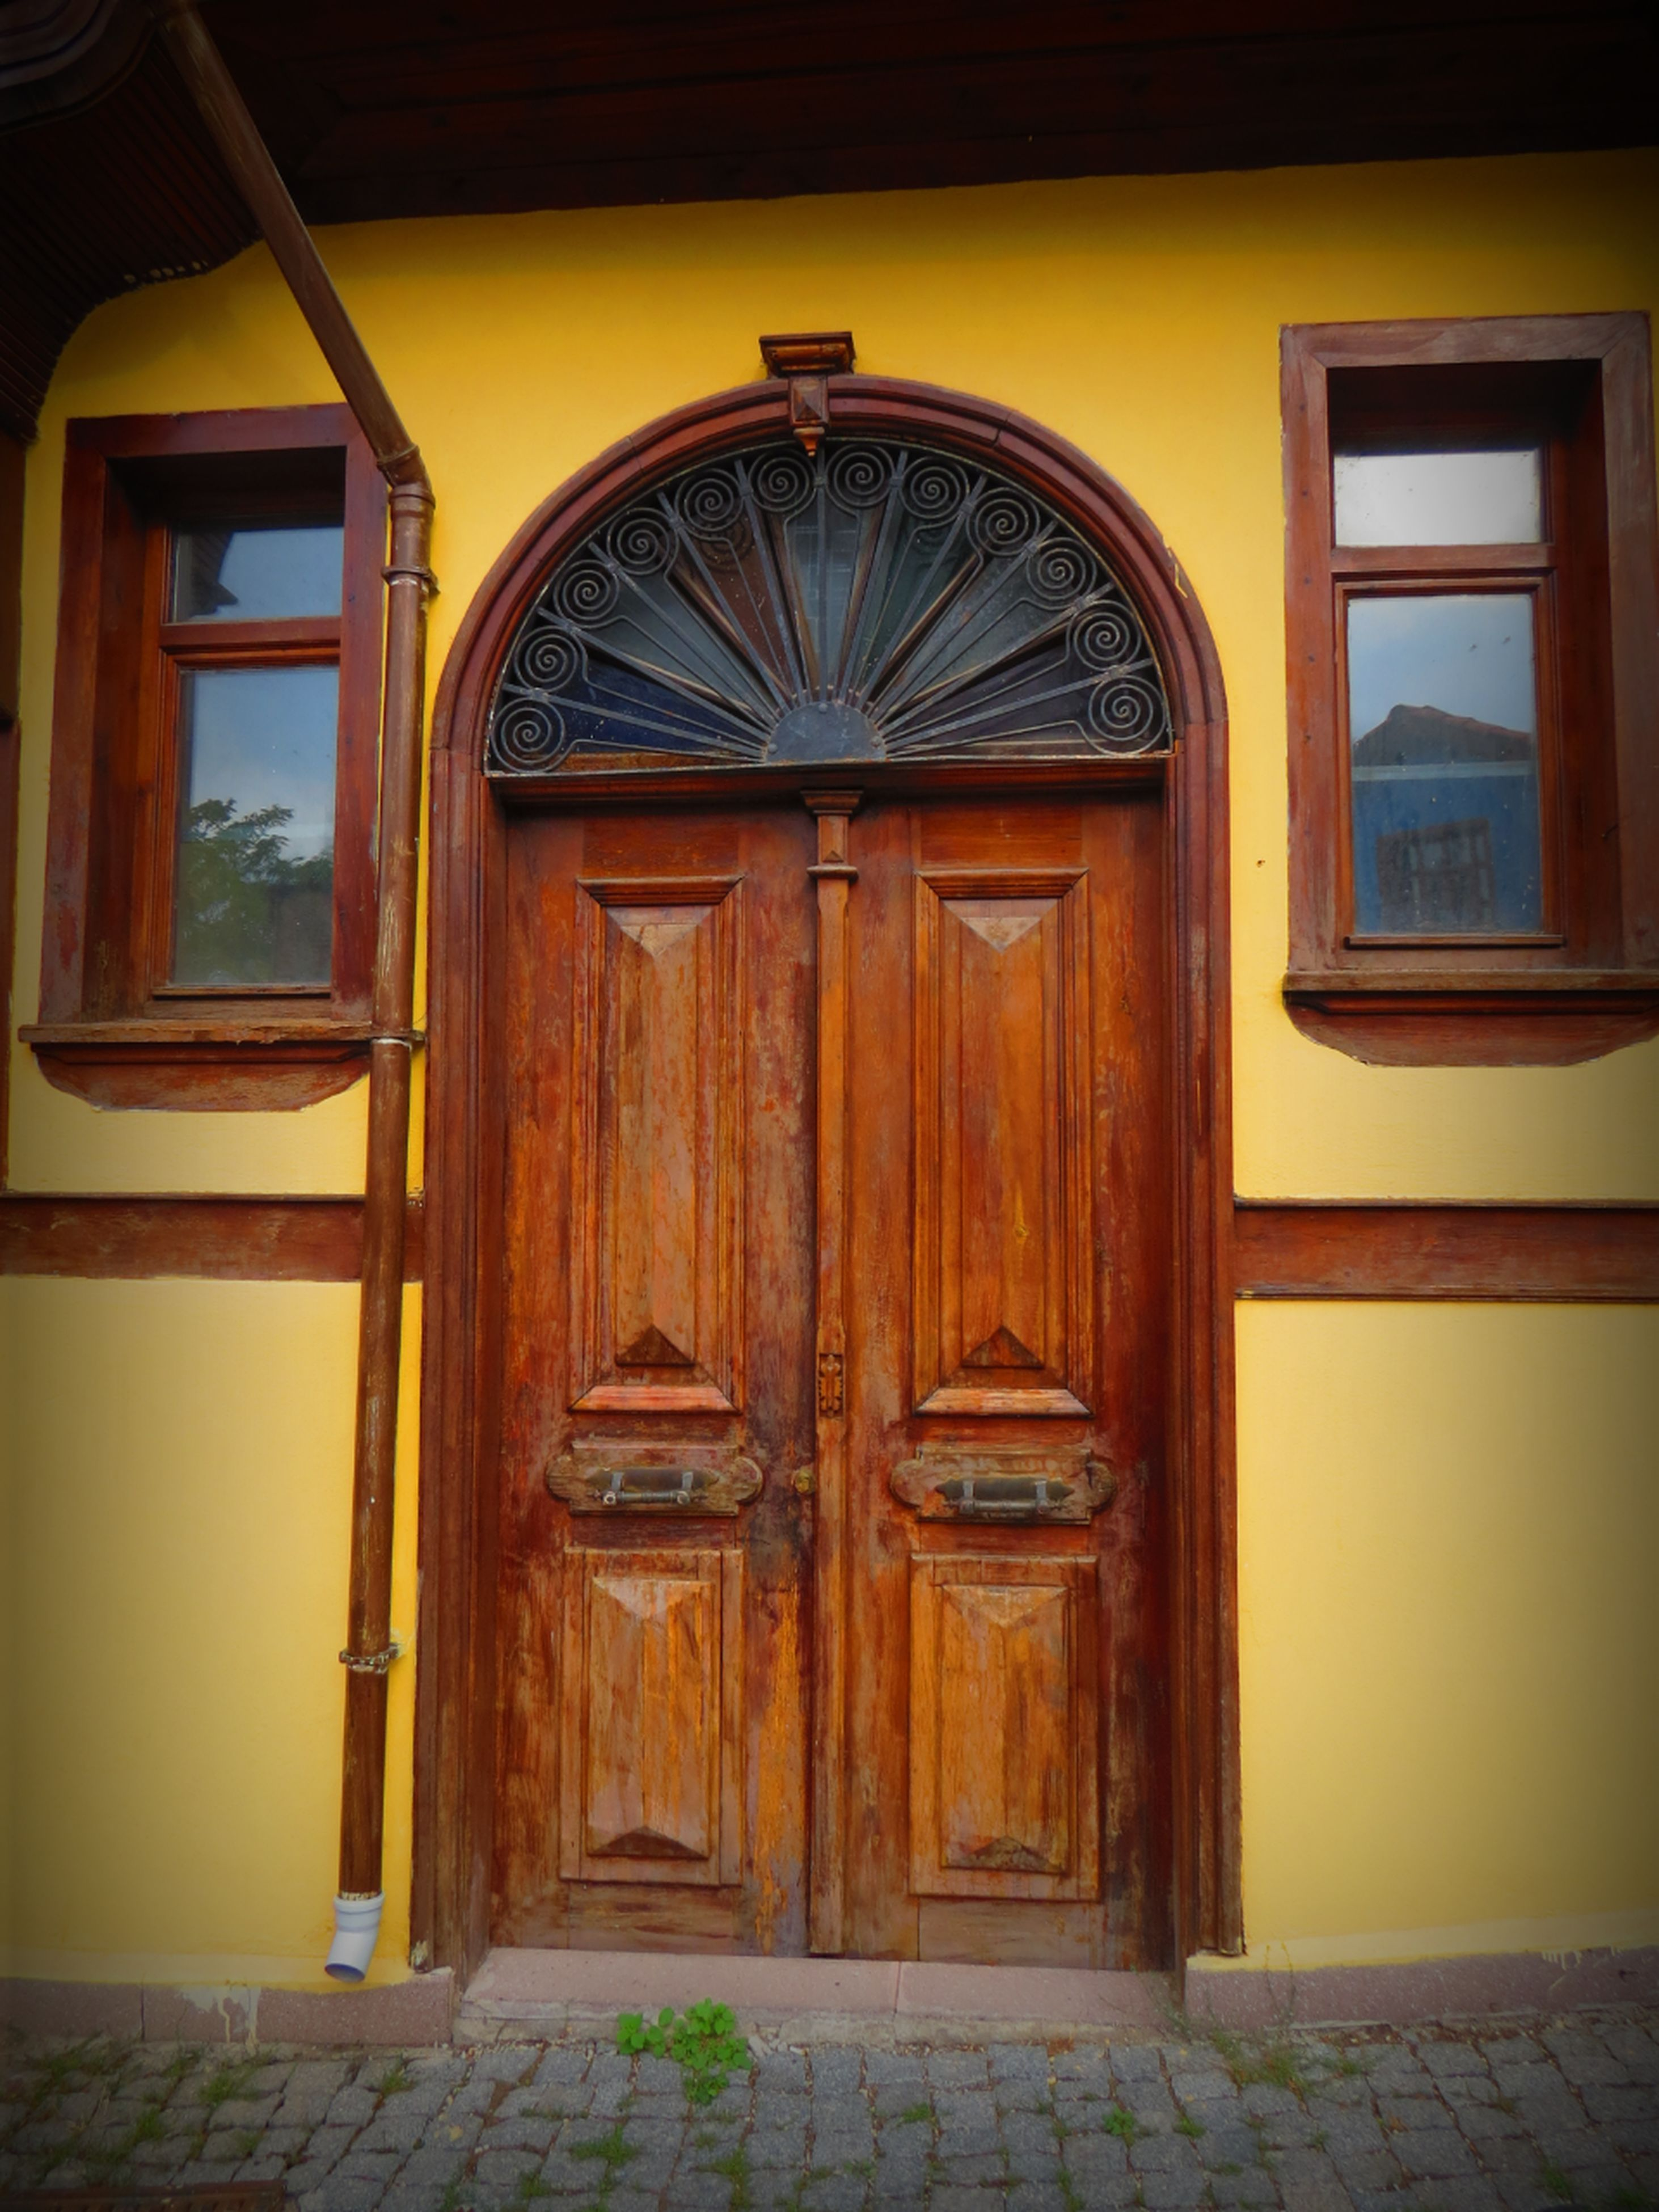 door, closed, architecture, built structure, entrance, building exterior, window, house, wood - material, safety, yellow, doorway, arch, open, protection, no people, security, empty, absence, gate